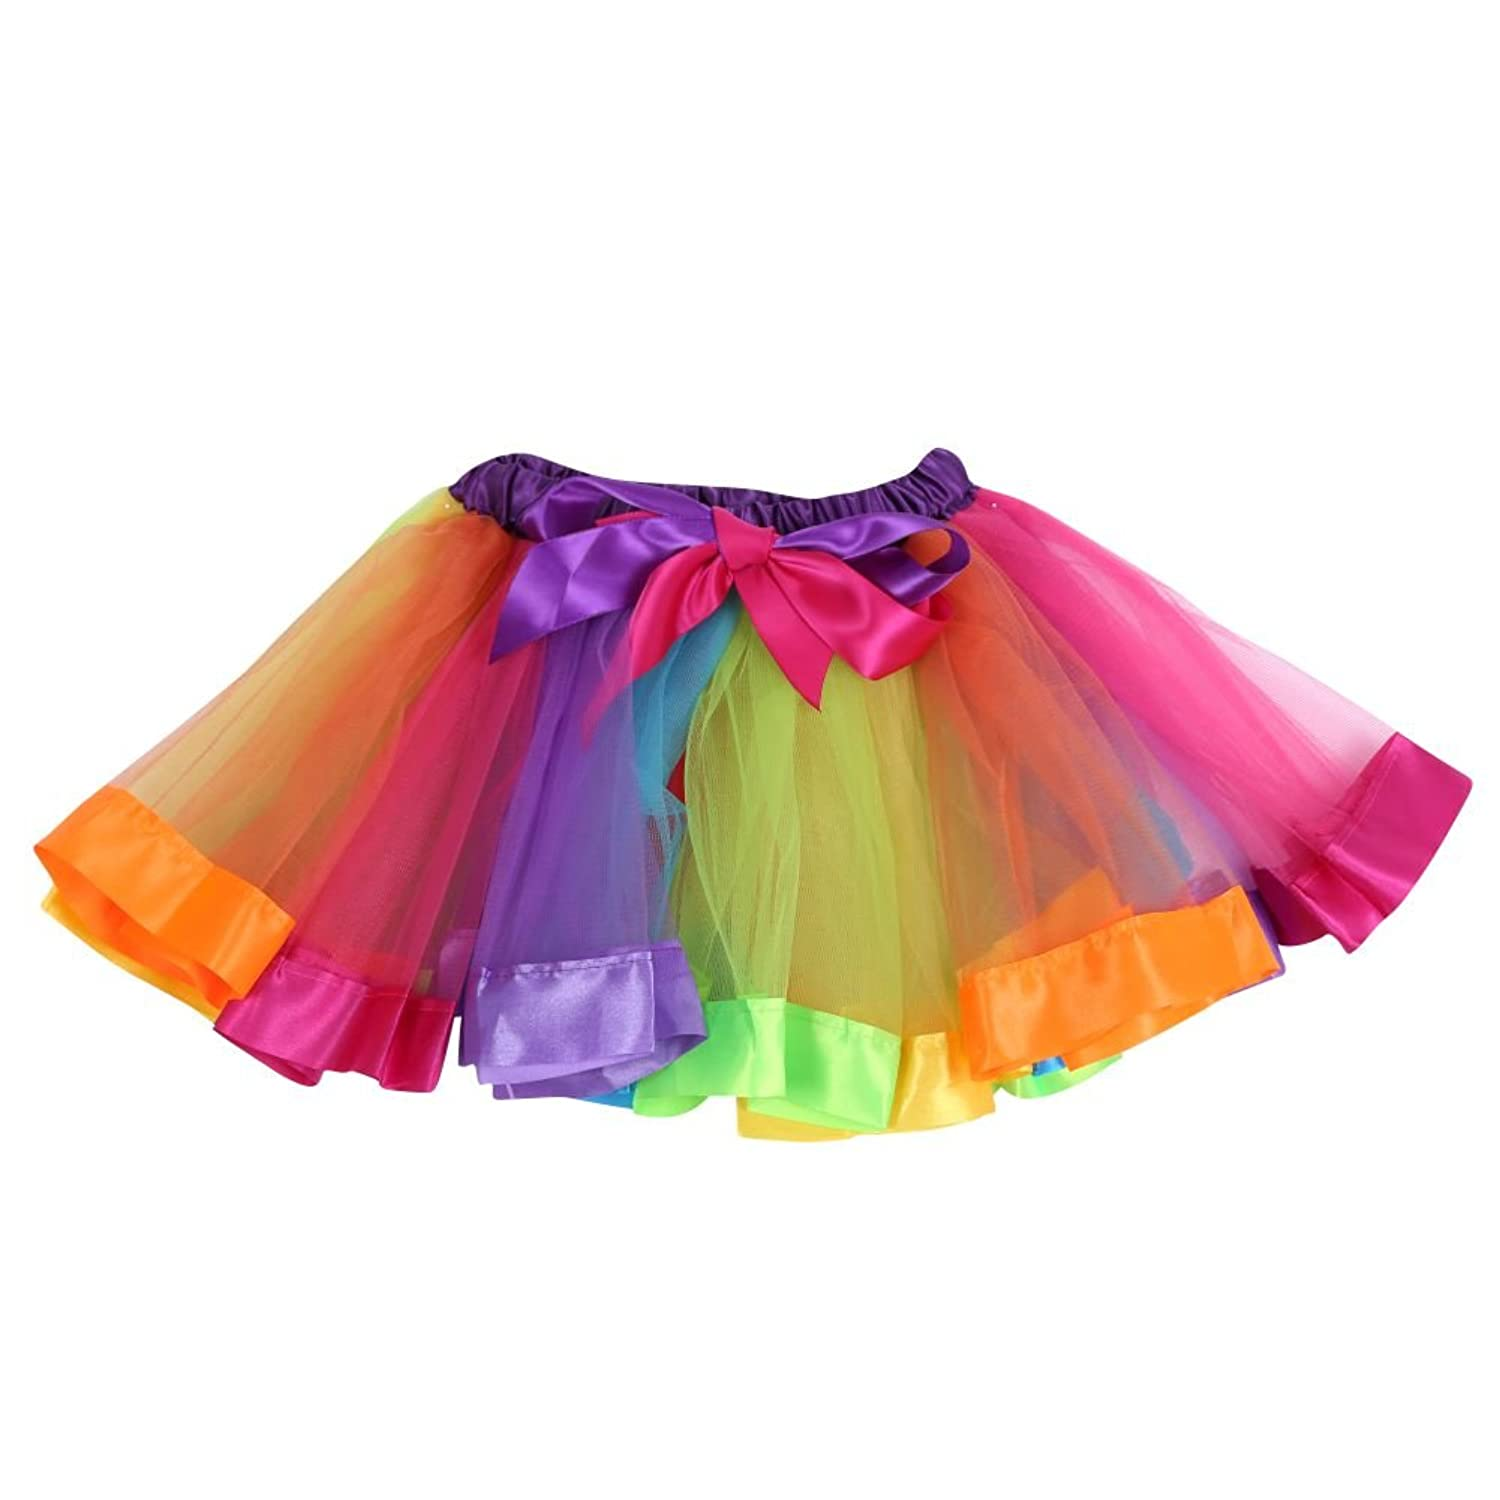 Brightup Kids Girls Ballet Tutu Skirts Baby Toddlers Casual Mini Skirt  Princess: Amazon.co.uk: Clothing